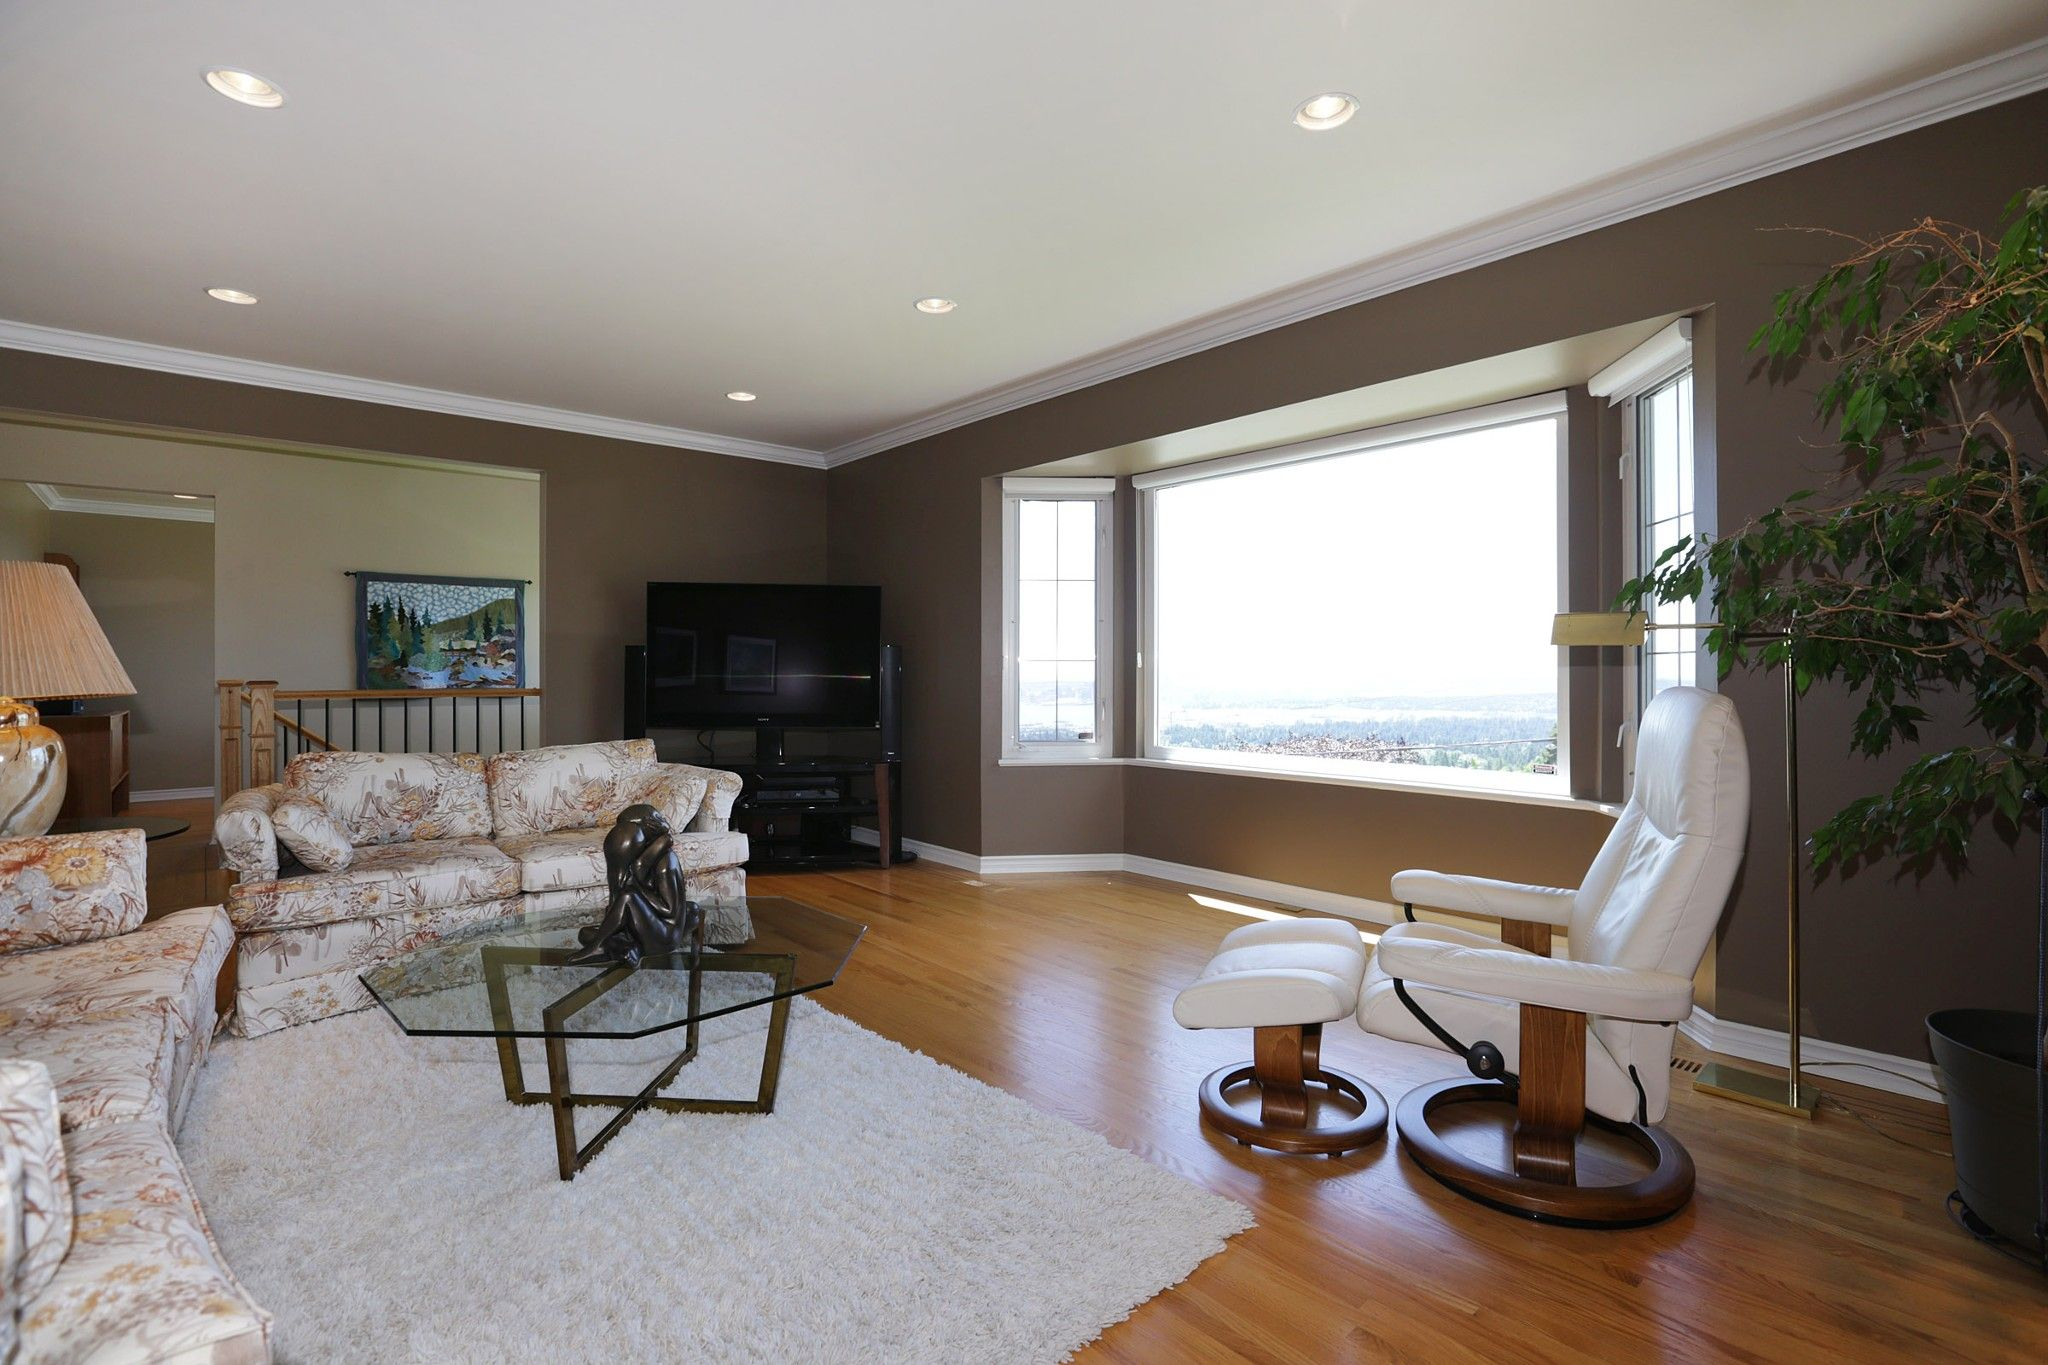 Photo 3: Photos: 372 VENTURA Crescent in North Vancouver: Upper Delbrook House for sale : MLS®# R2284717